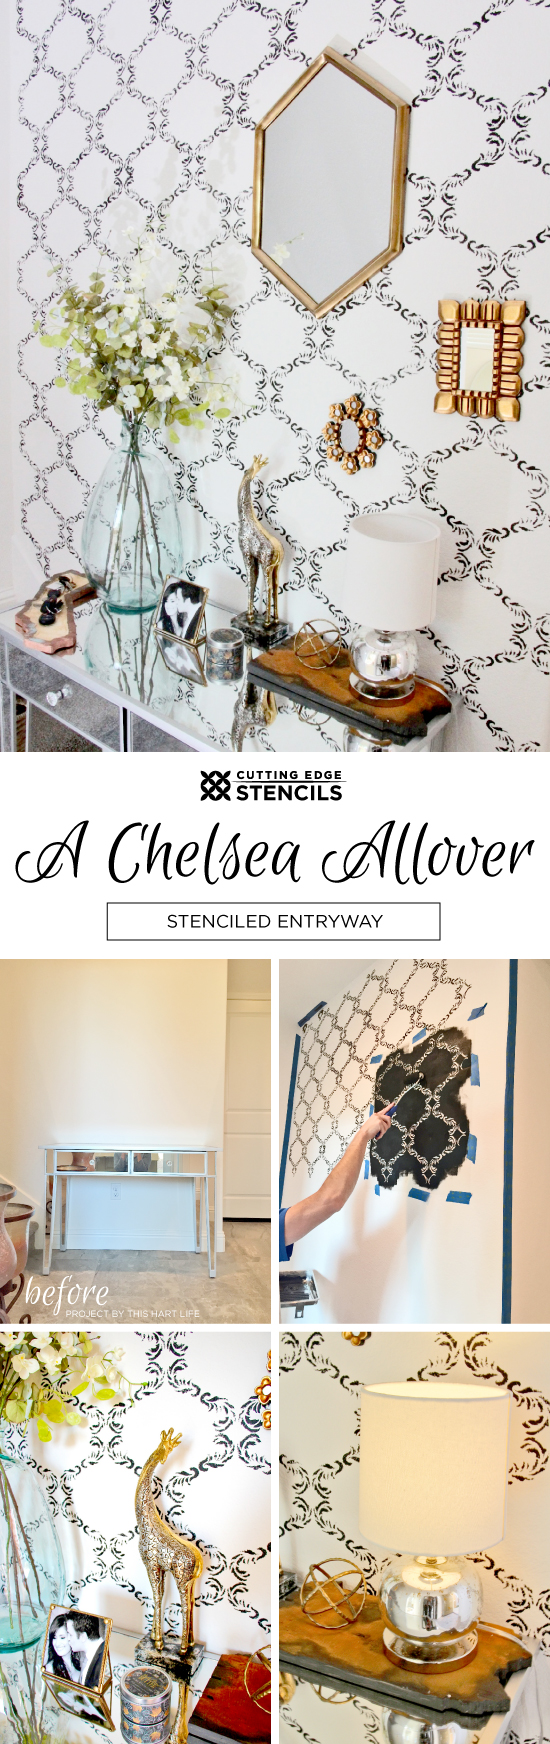 Cutting Edge Stencils shares DIY stenciled entryway using the Chelsea Allover Stencil. http://www.cuttingedgestencils.com/chelsea-allover-wall-pattern.html